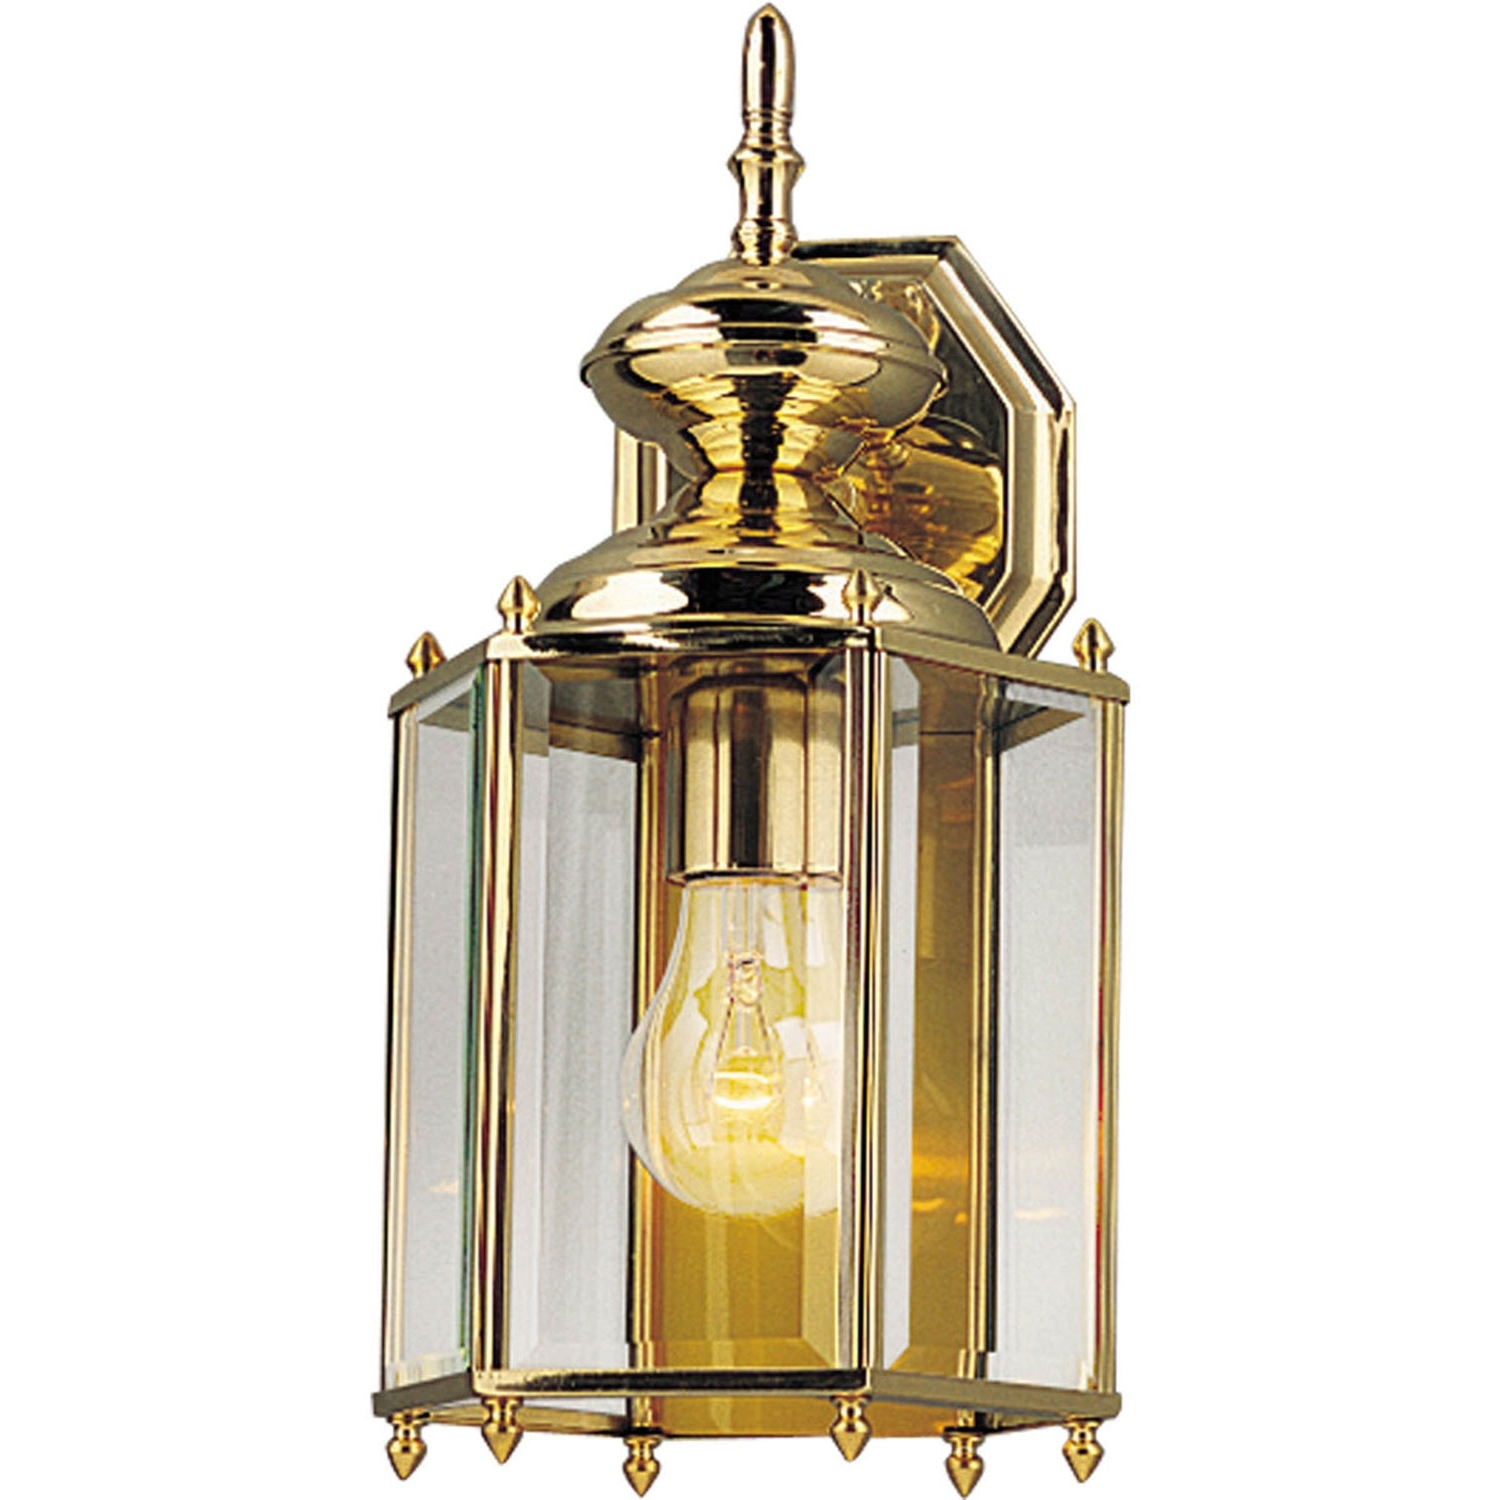 Brass Outdoor Lanterns With Regard To Well Known Progress Lighting P5832 10: Brassguard Lanterns Polished Brass One (View 9 of 20)